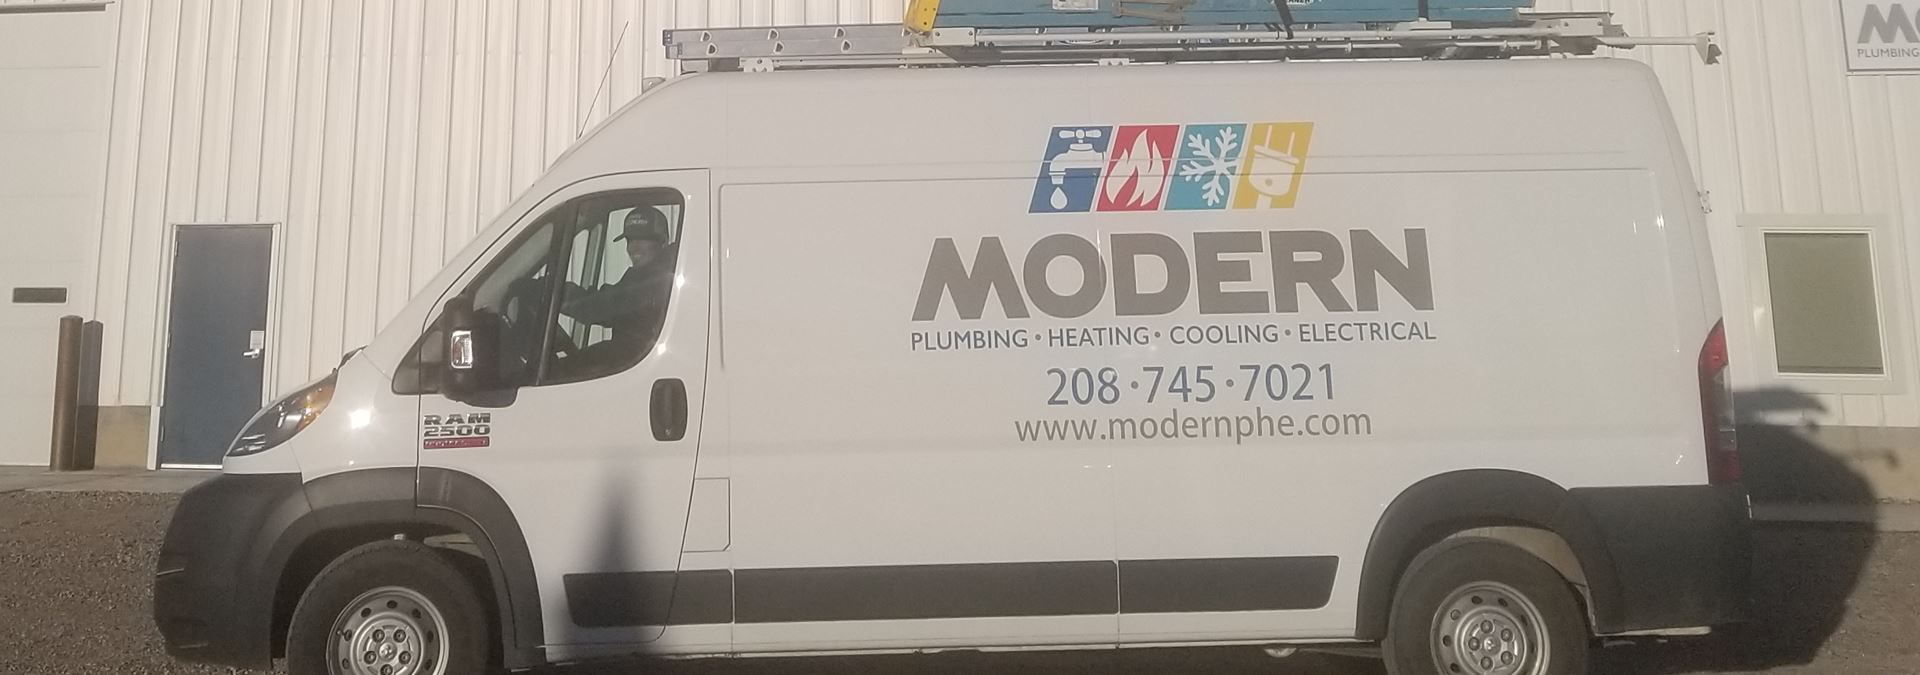 Home Modern Plumbing Heating Electrical